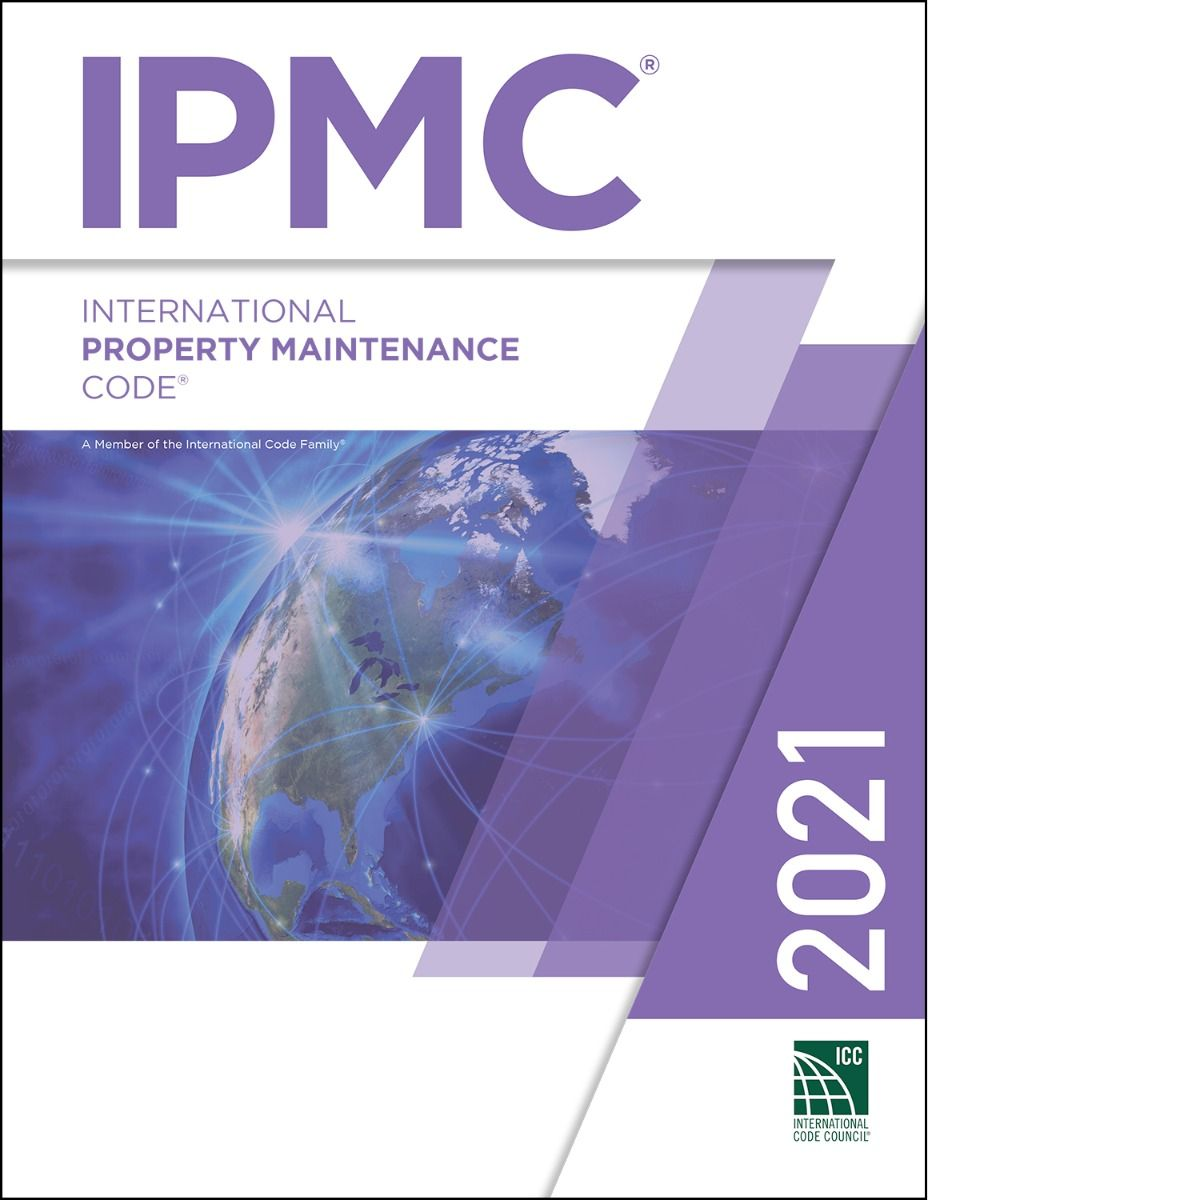 2021 International Property Maintenance Code®